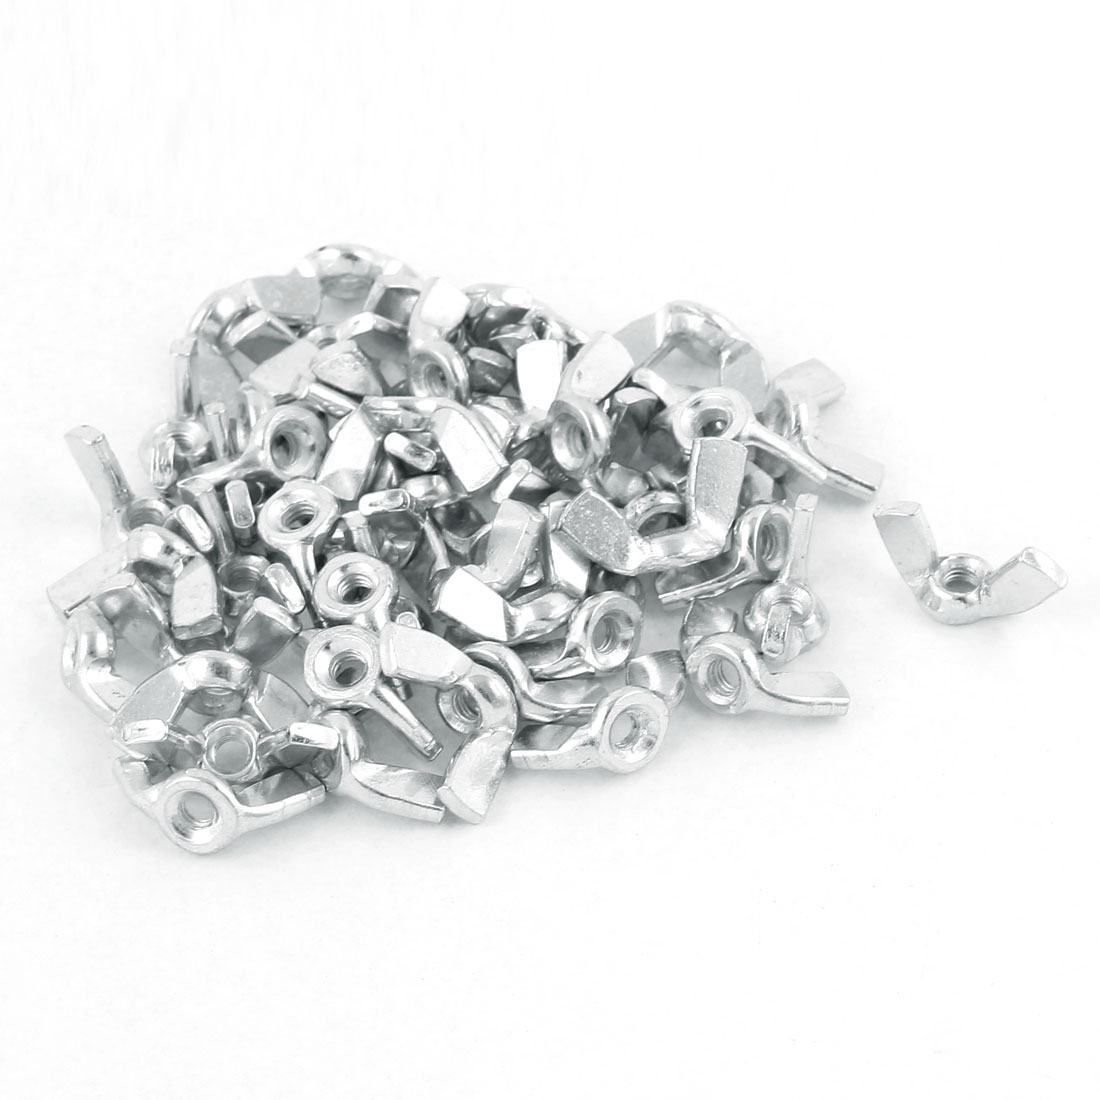 50Pcs M3 x 7.2mm Thread Zinc Plated Steel Nuts Wing Nut Silver Tone